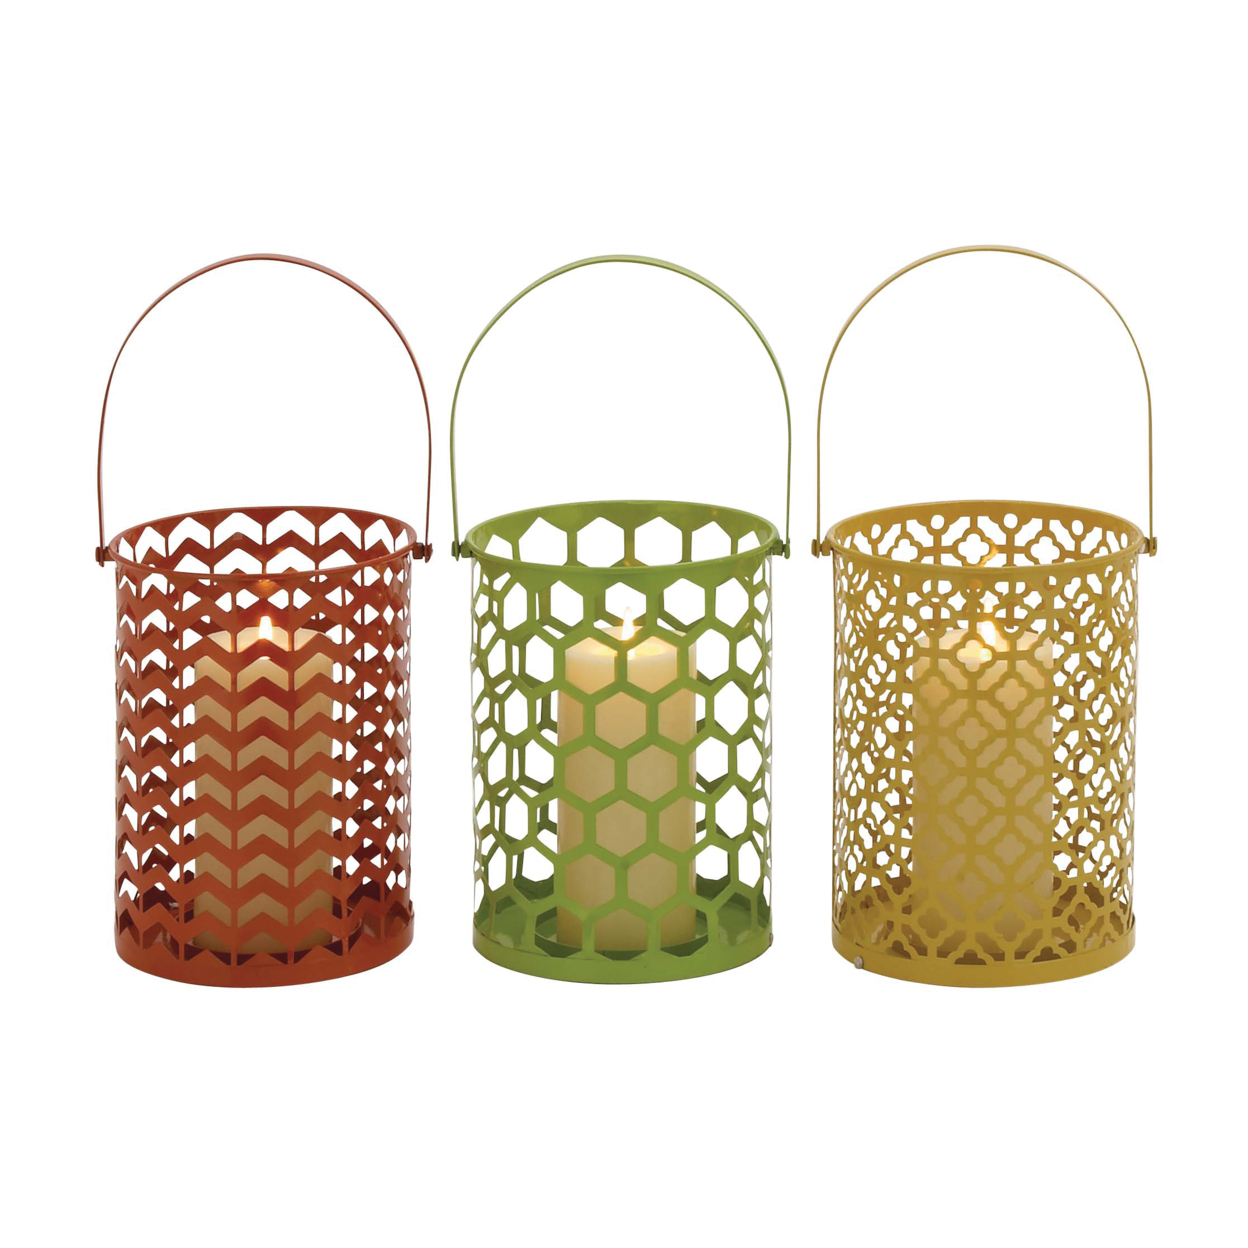 The Stunning Metal Candle Basket 3 Assorted 59c2457ce224615b7a1241ff